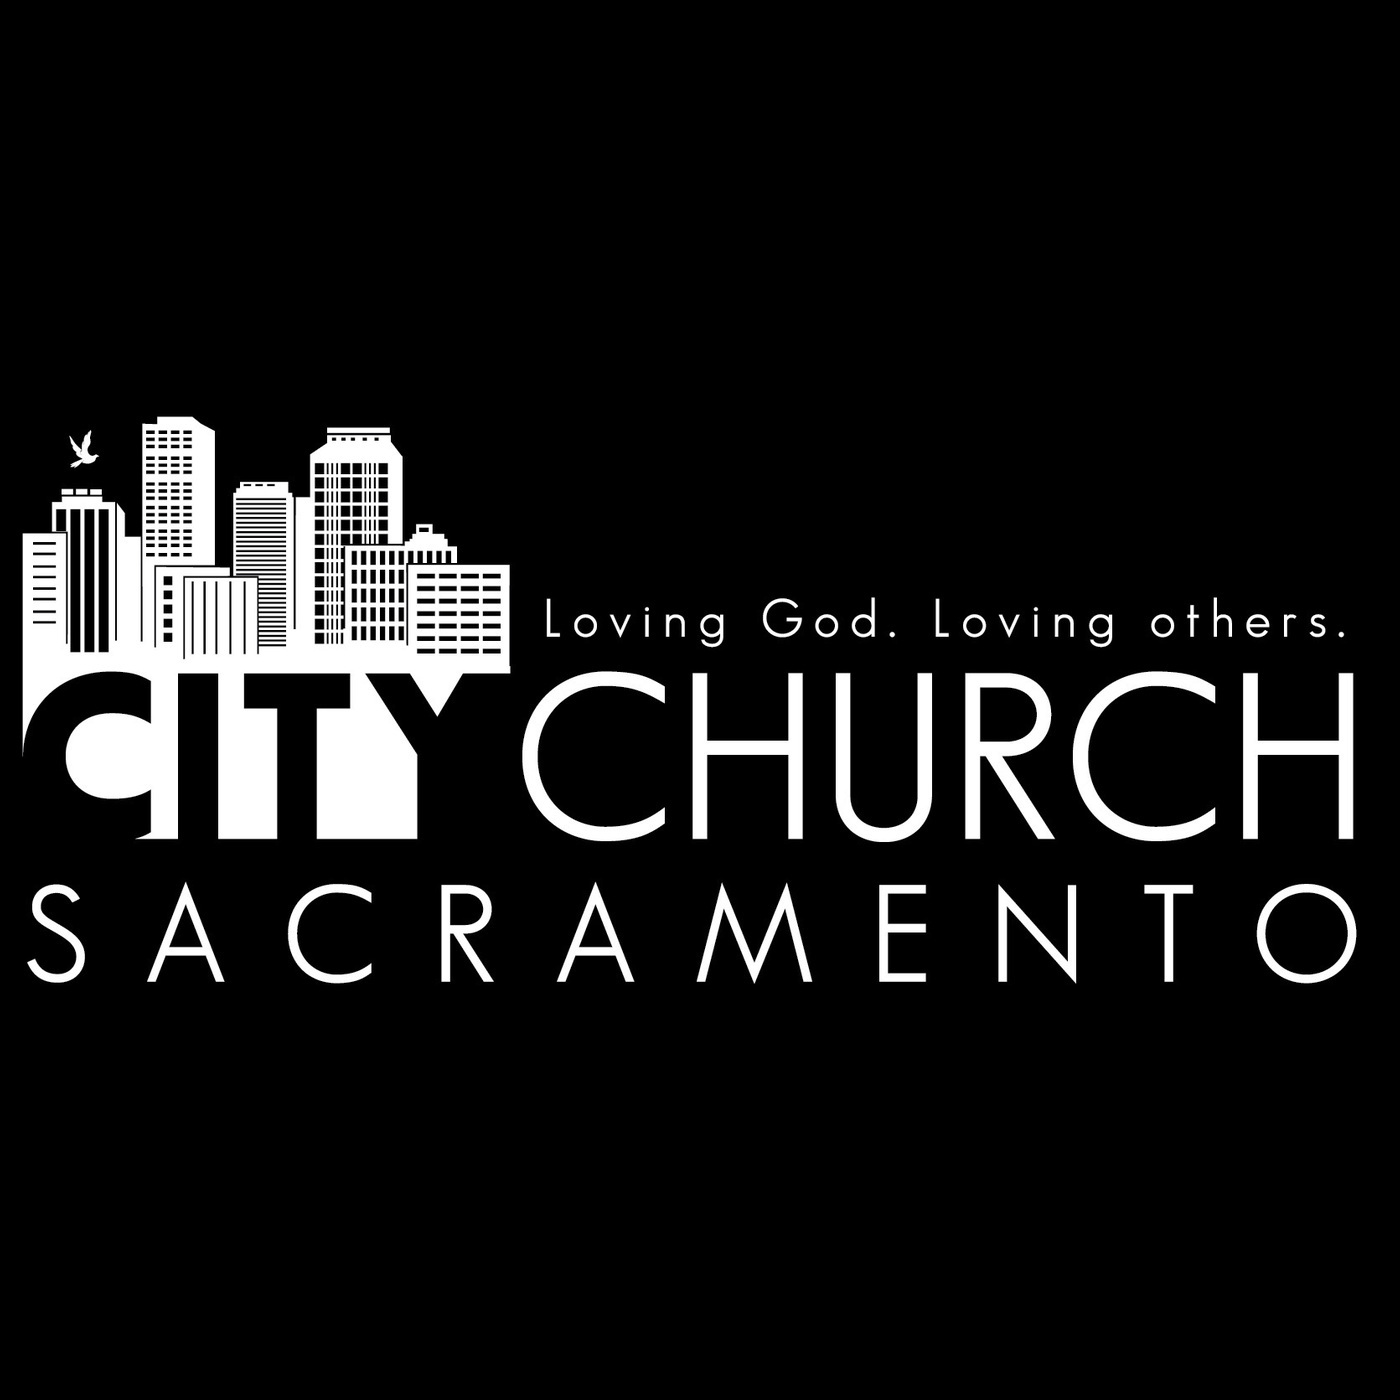 City Church Sacramento